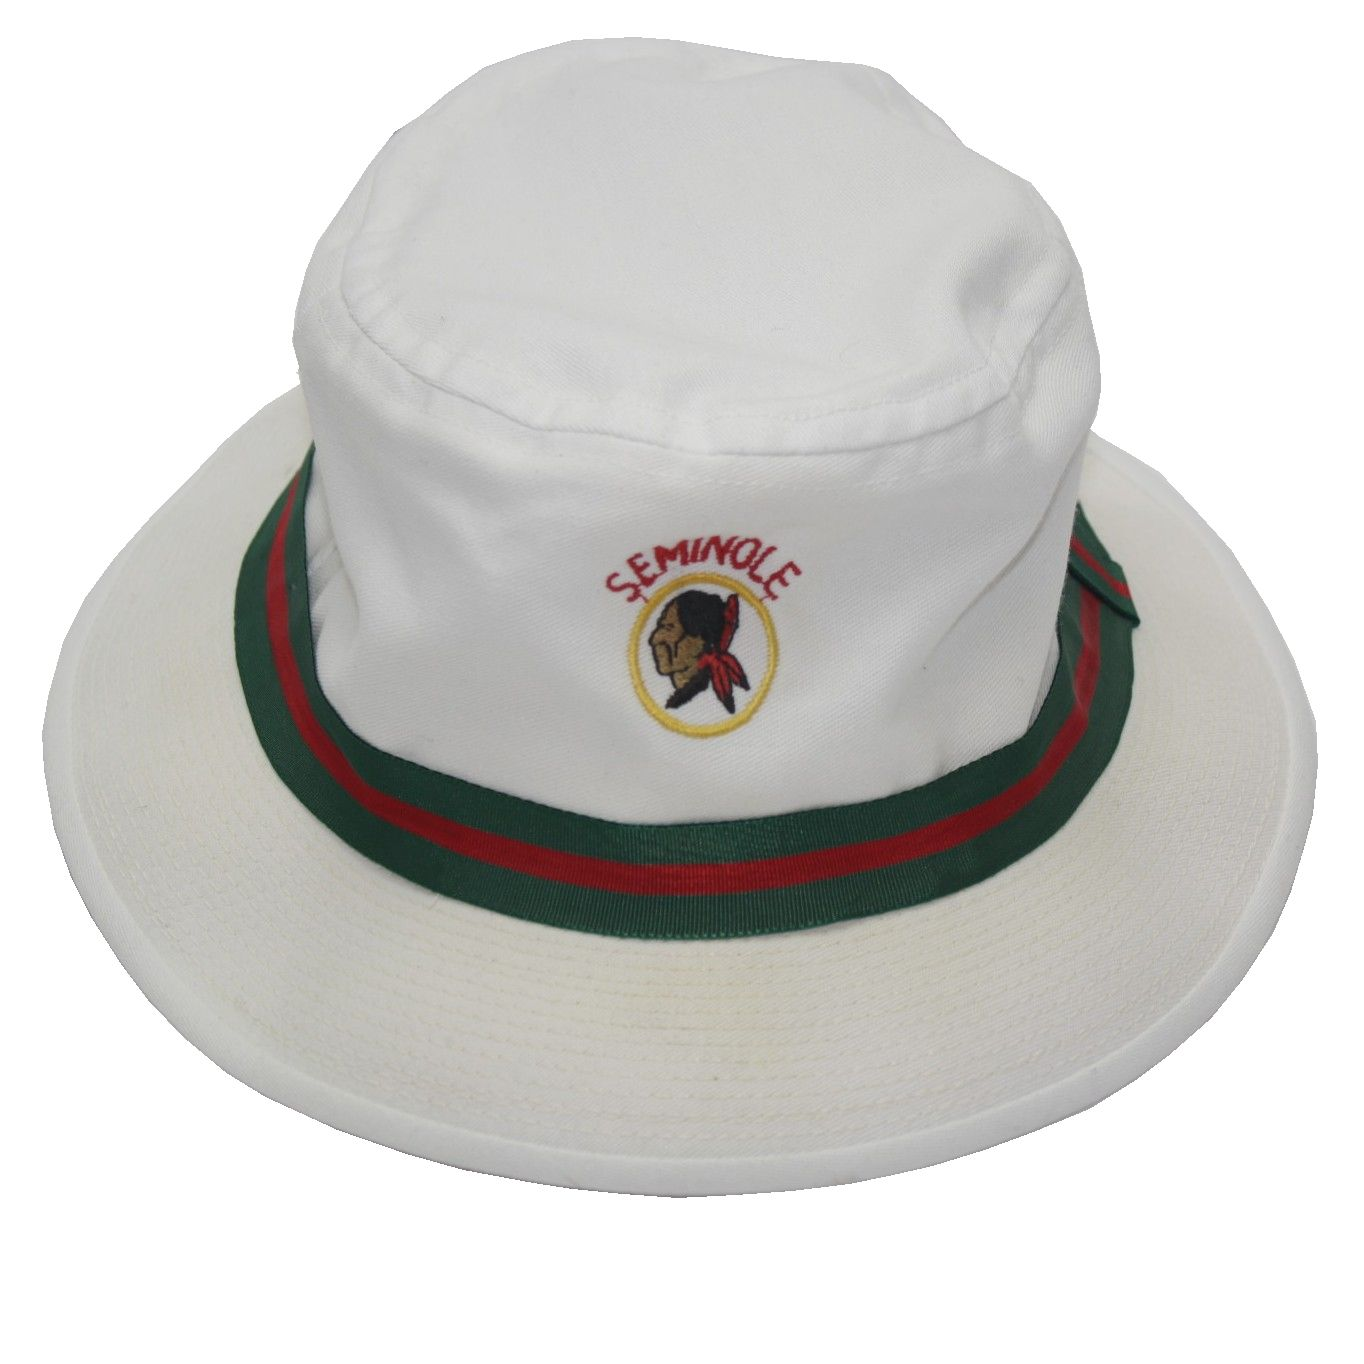 Lot detail seminole golf club white bucket hat seminole golf club white bucket hat altavistaventures Gallery